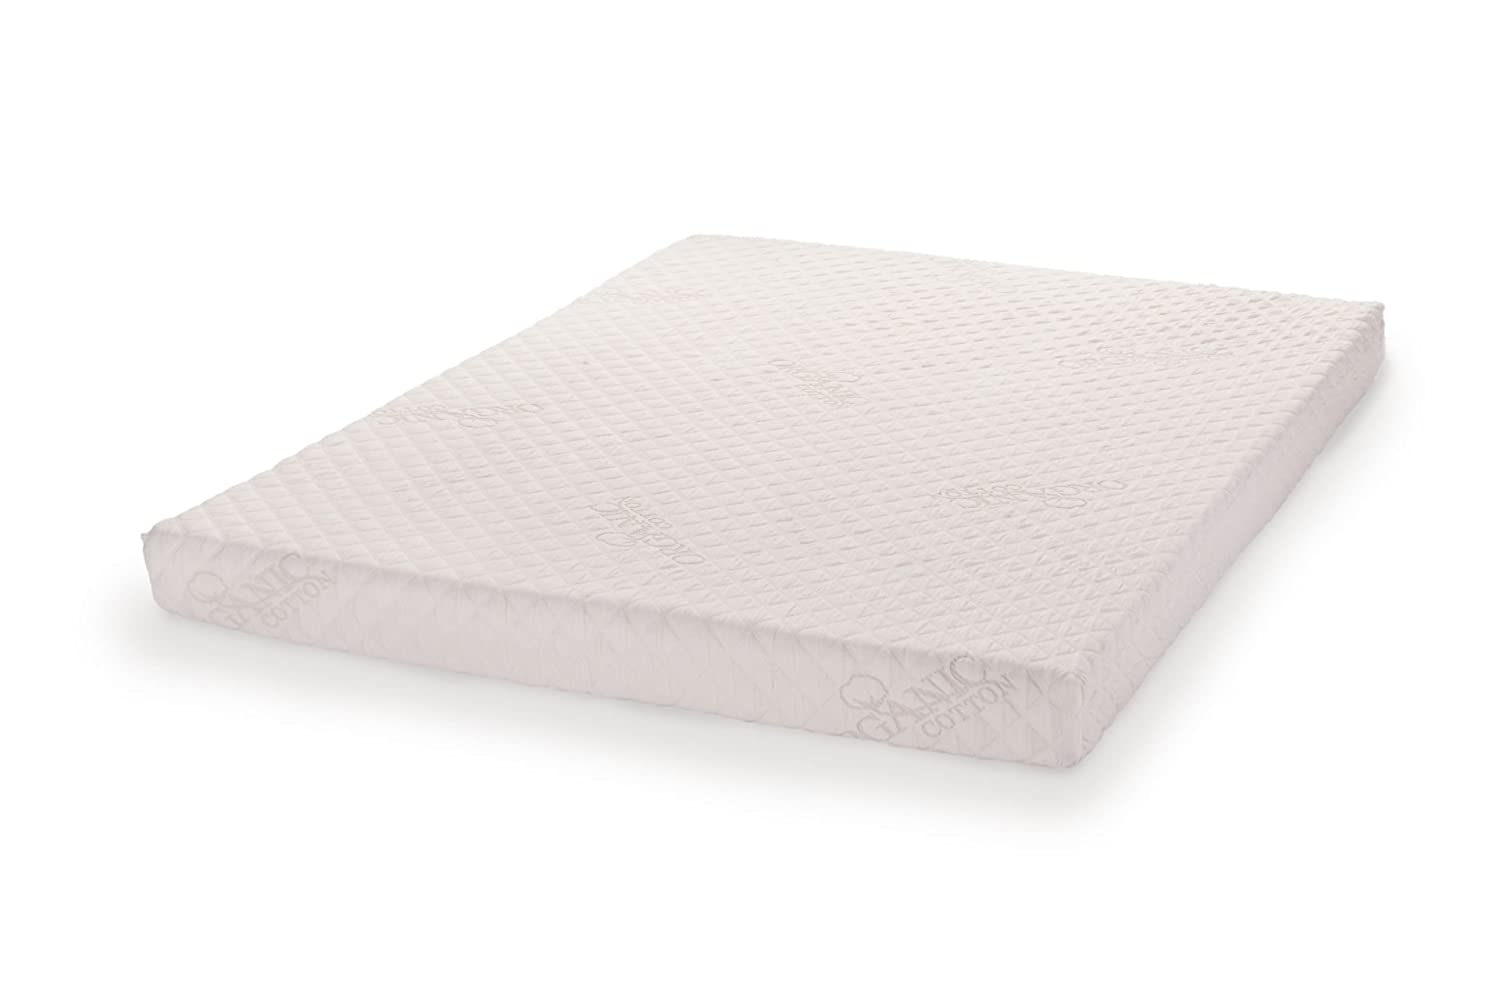 PlushBeds Natural Latex Sofa Bed Mattress - Queen